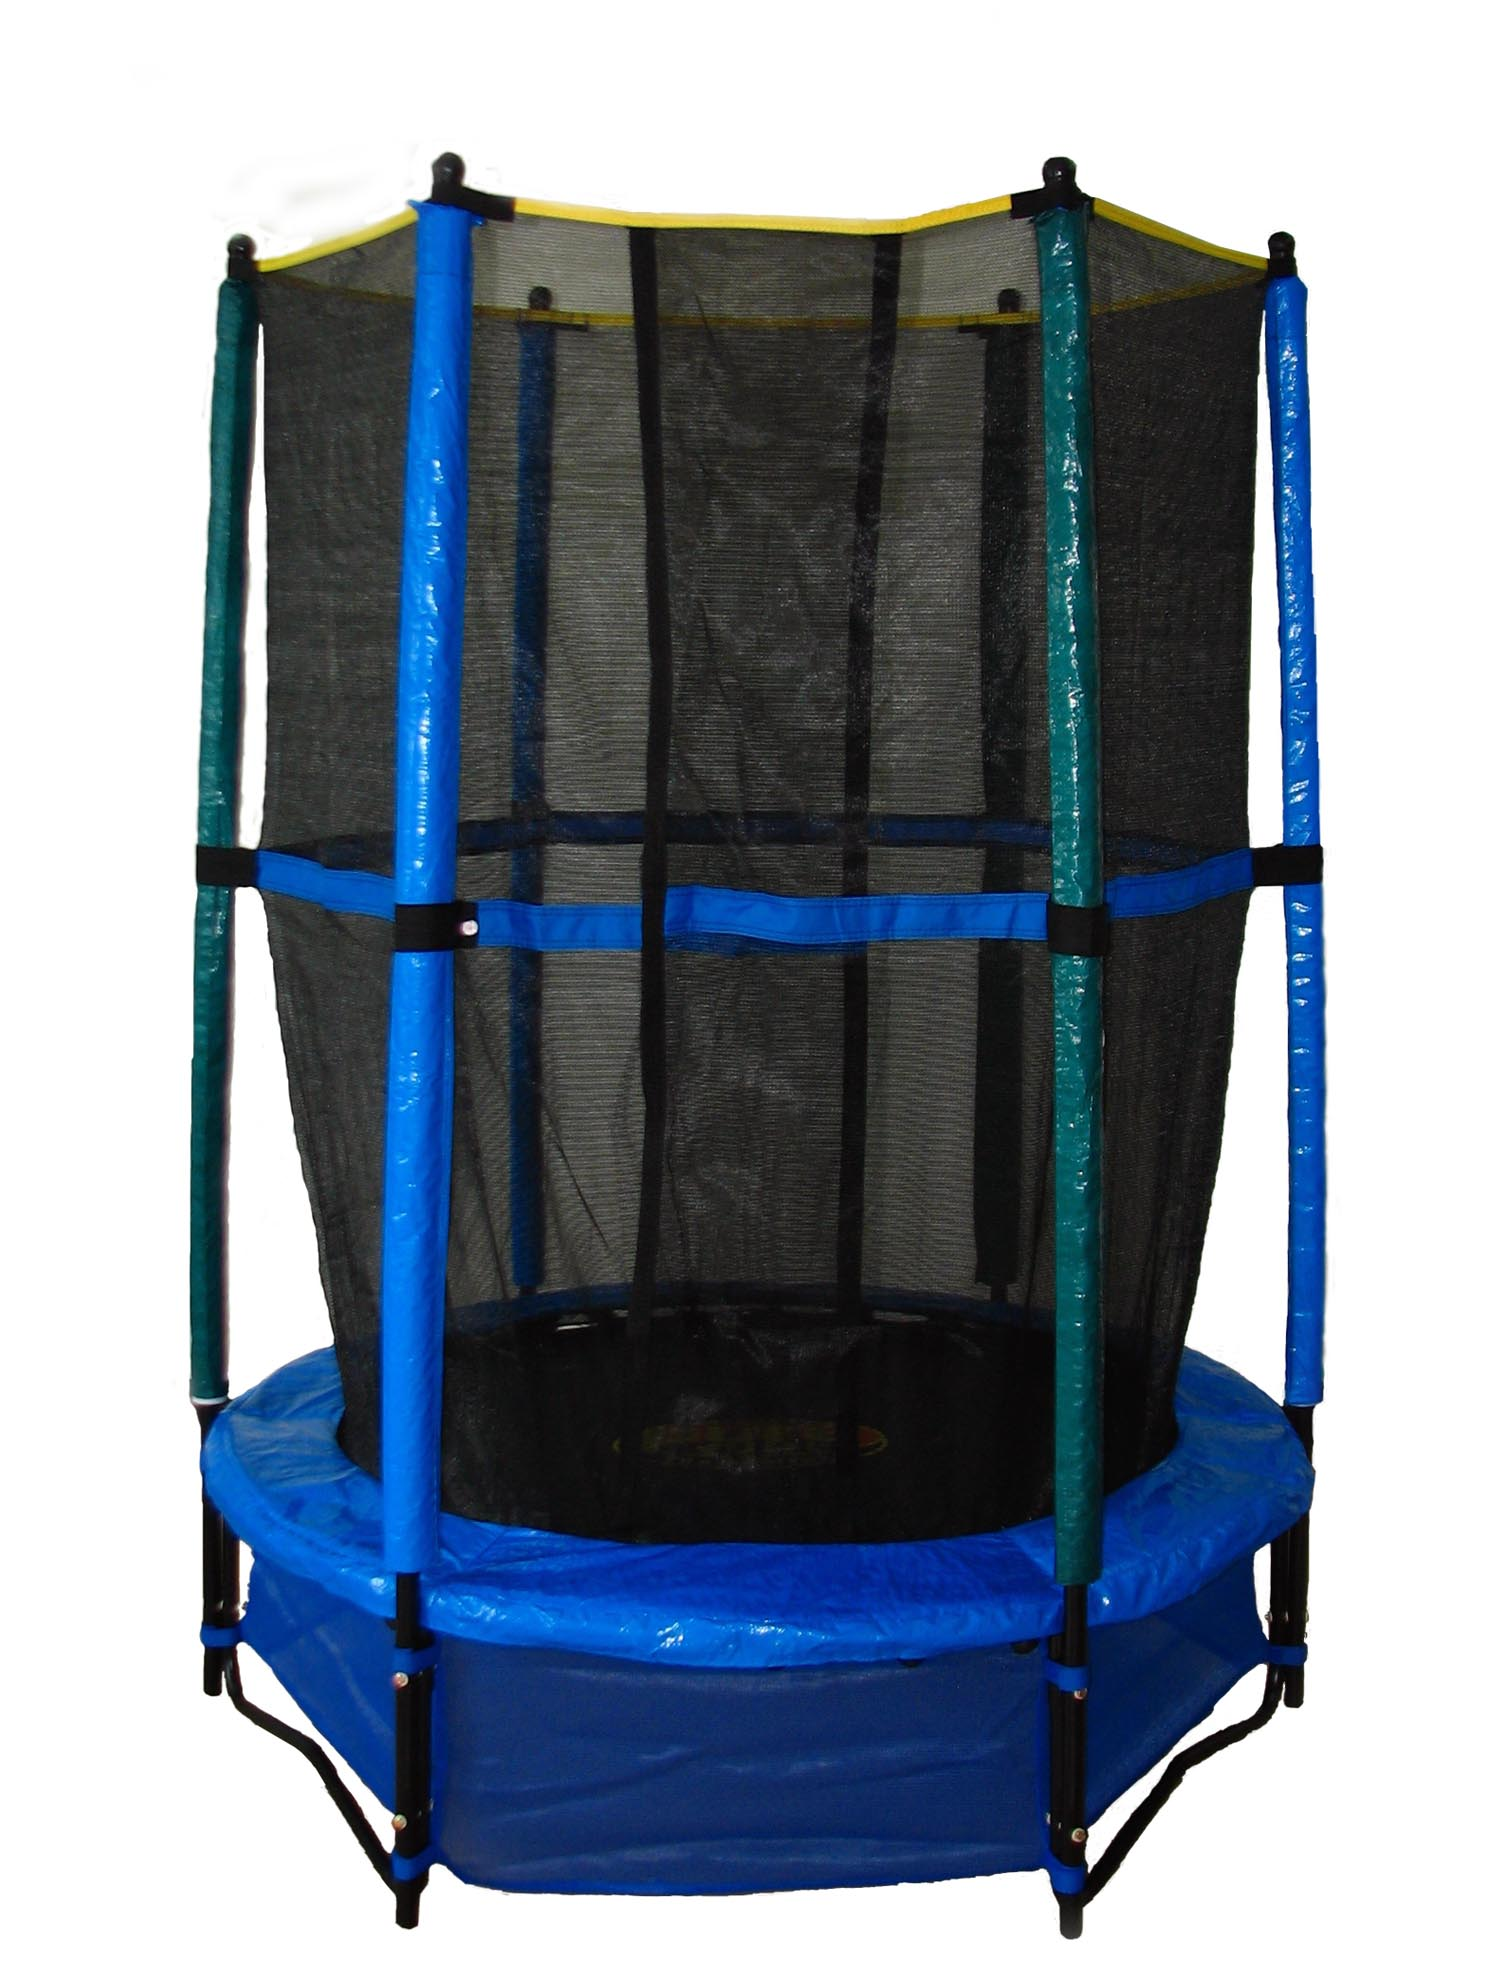 pure fun 55 inch trampoline and enclosure set mini trampoline 0 0 Pure Fun 55 Inch Trampoline and Enclosure Set